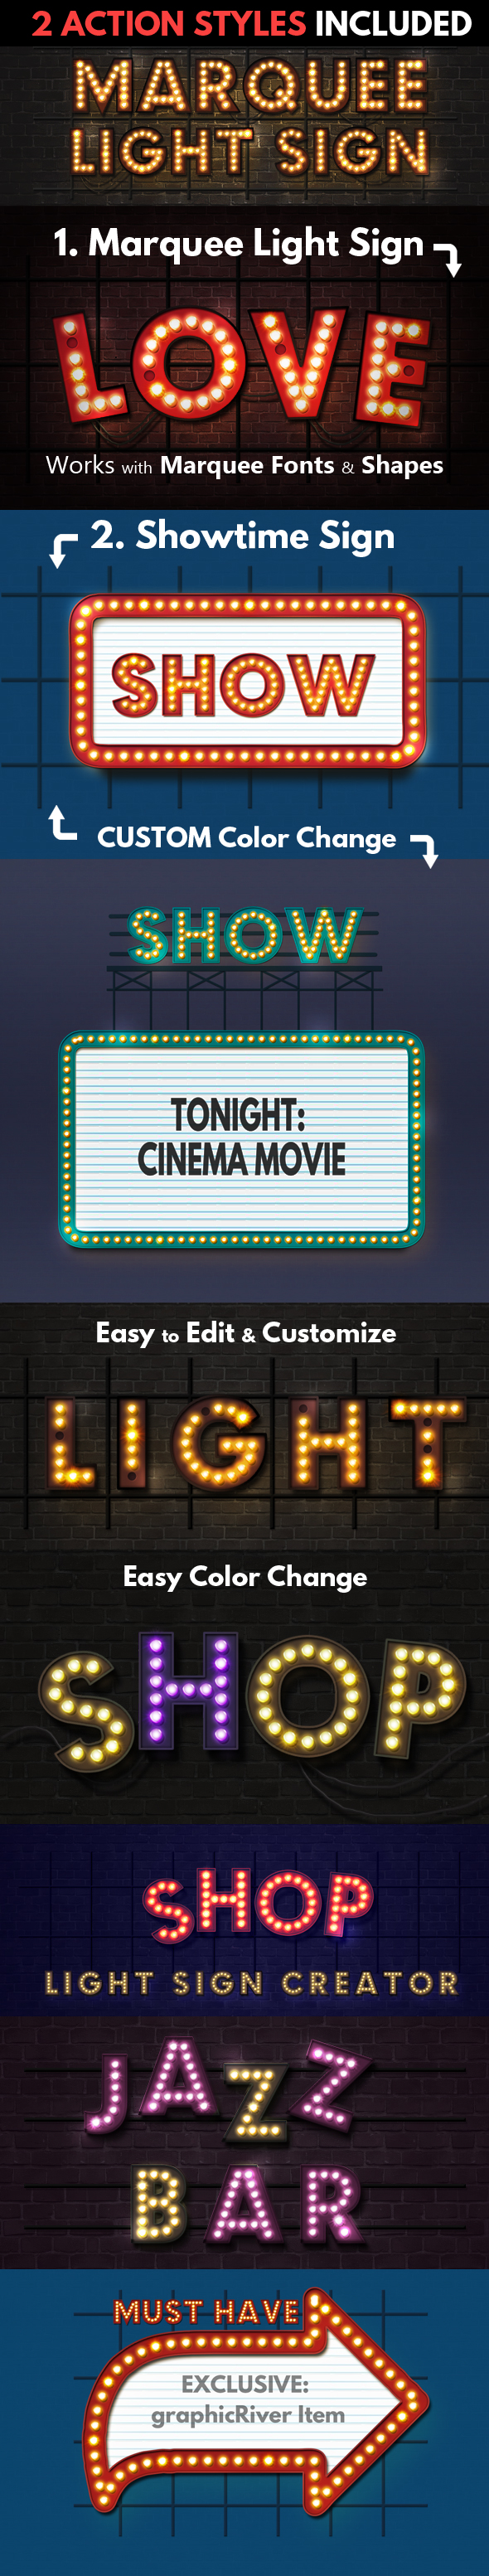 How to Create a Marquee Light Bulb Sign with Photoshop ...